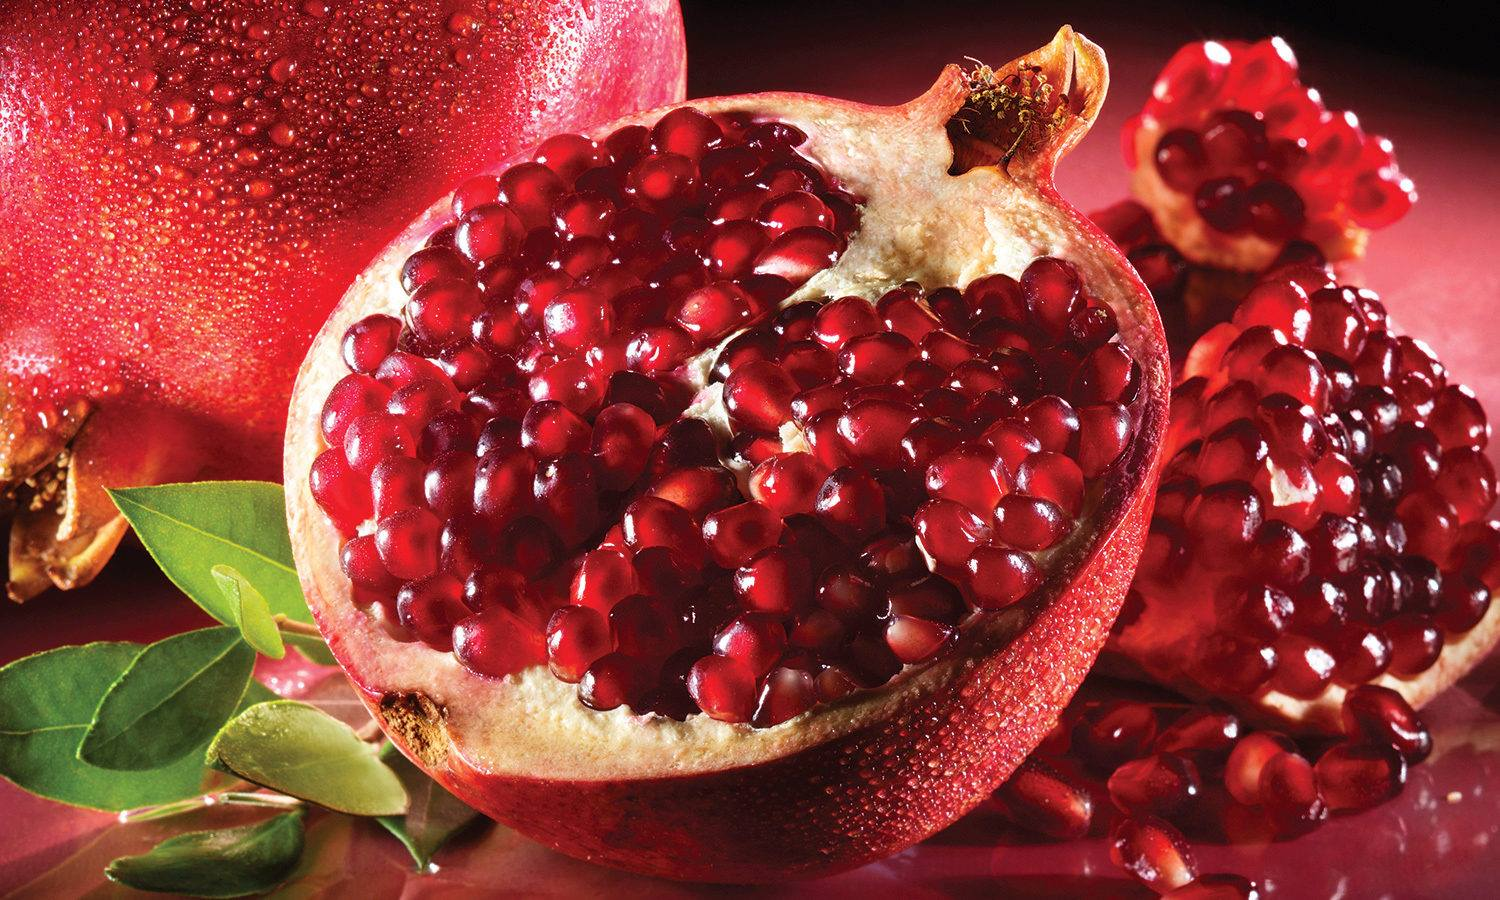 How To Lose Weight with Pomegranate